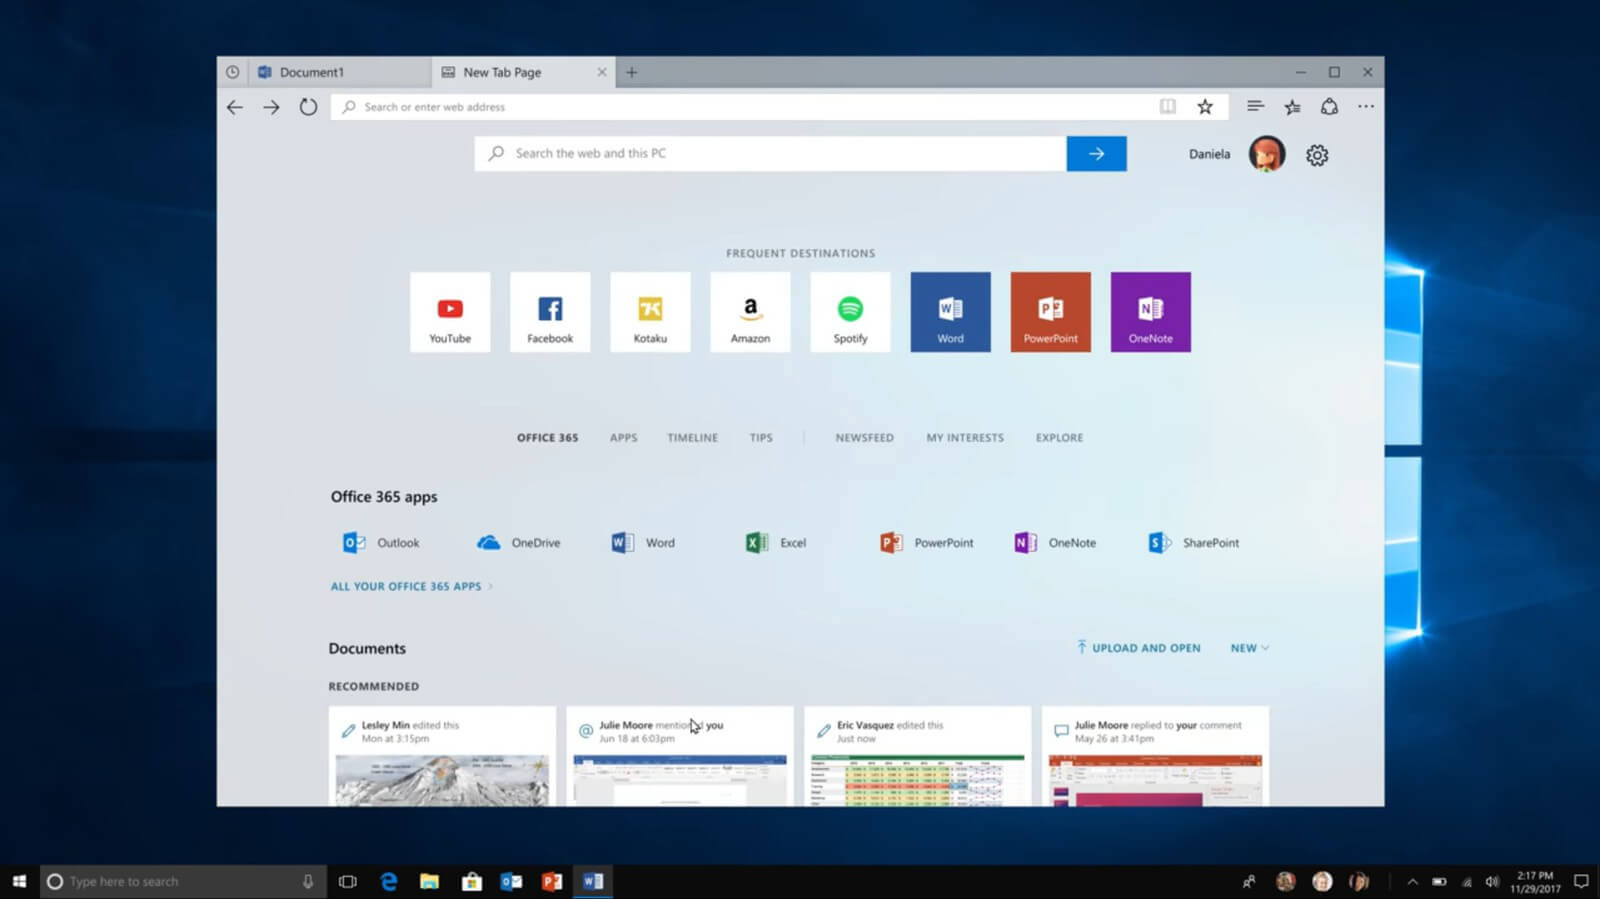 Microsoft's upcoming Windows 10 'Sets' feature will let you